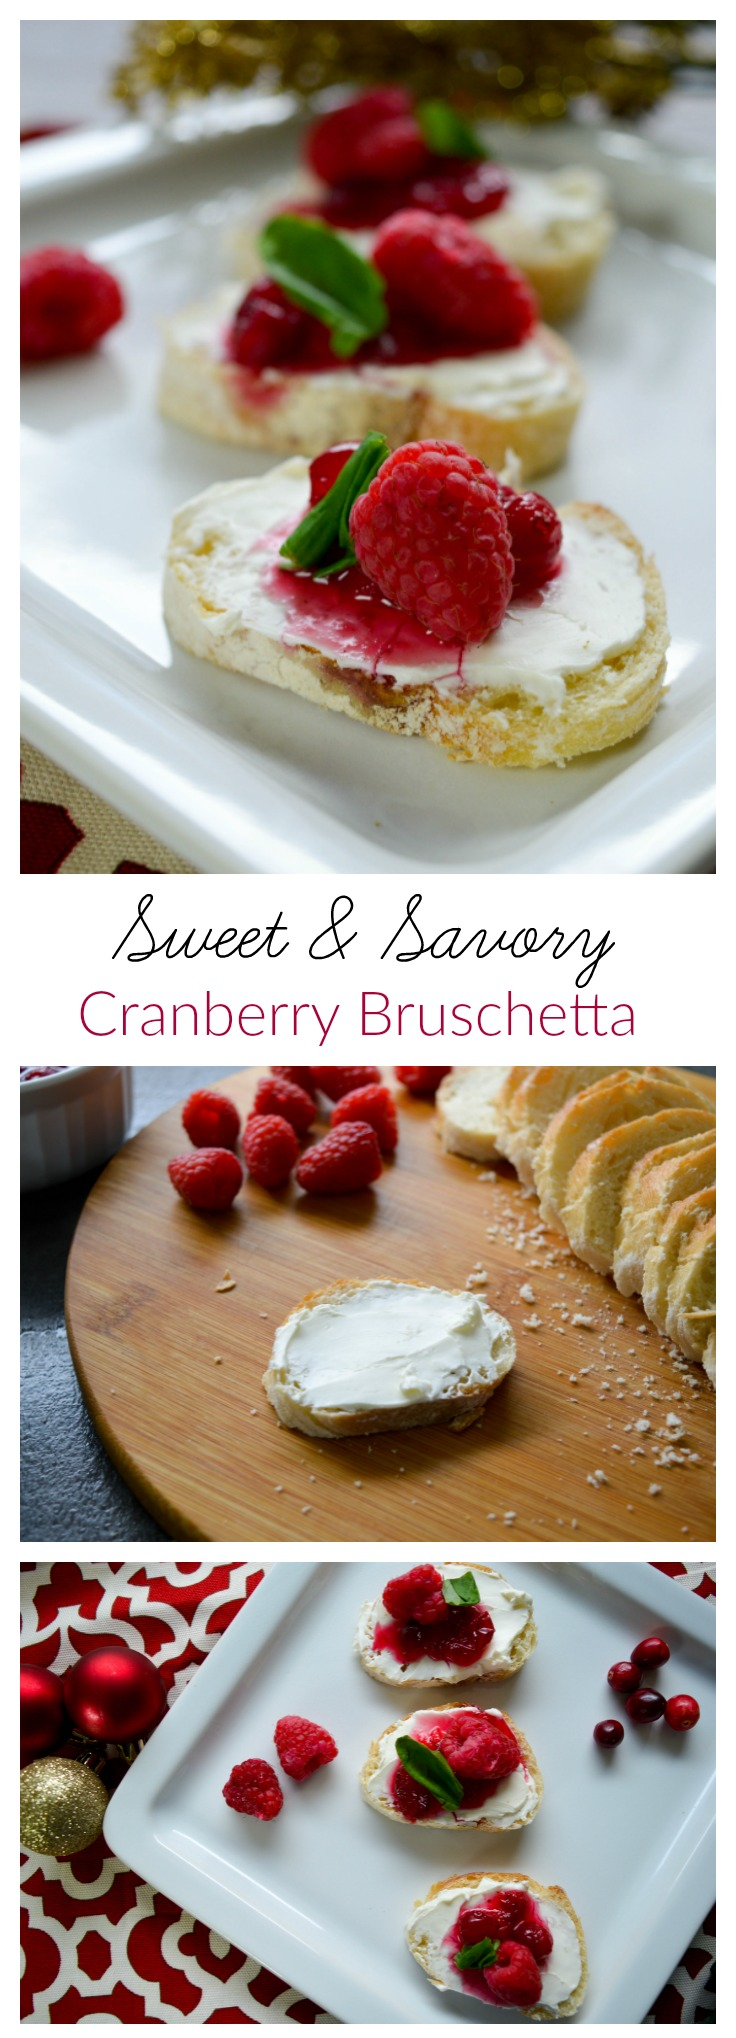 cranberry-bruschetta-crostini